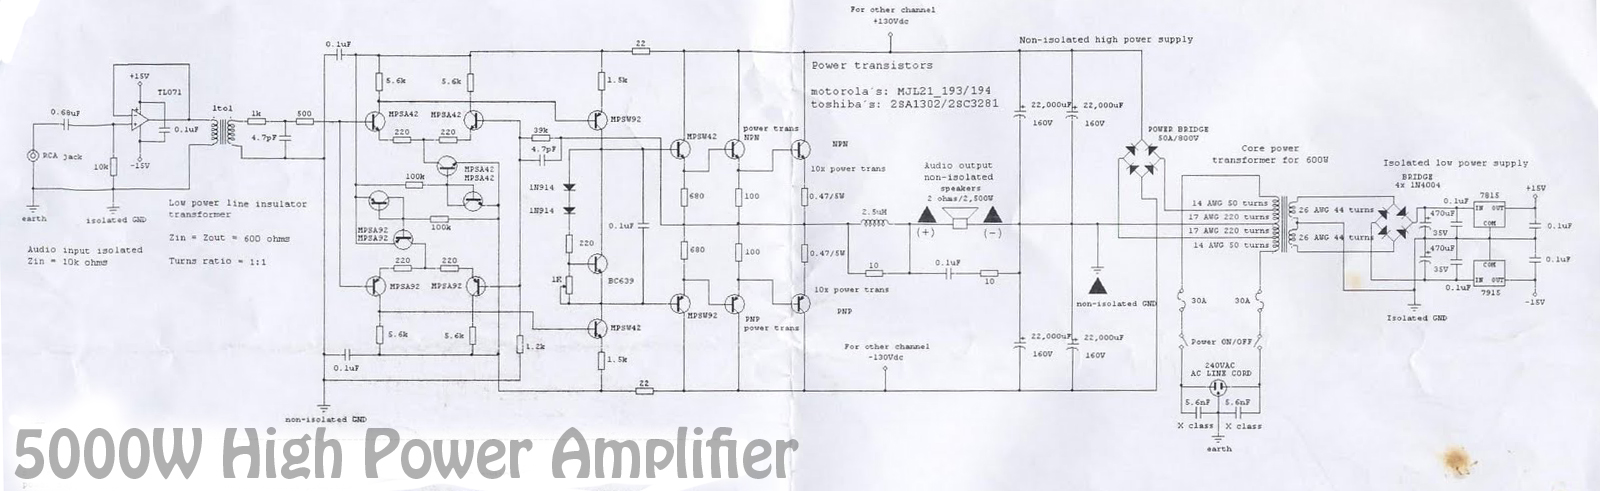 5000 Watts Amplifier Circuit Diagrams - Wiring Diagrams Plug